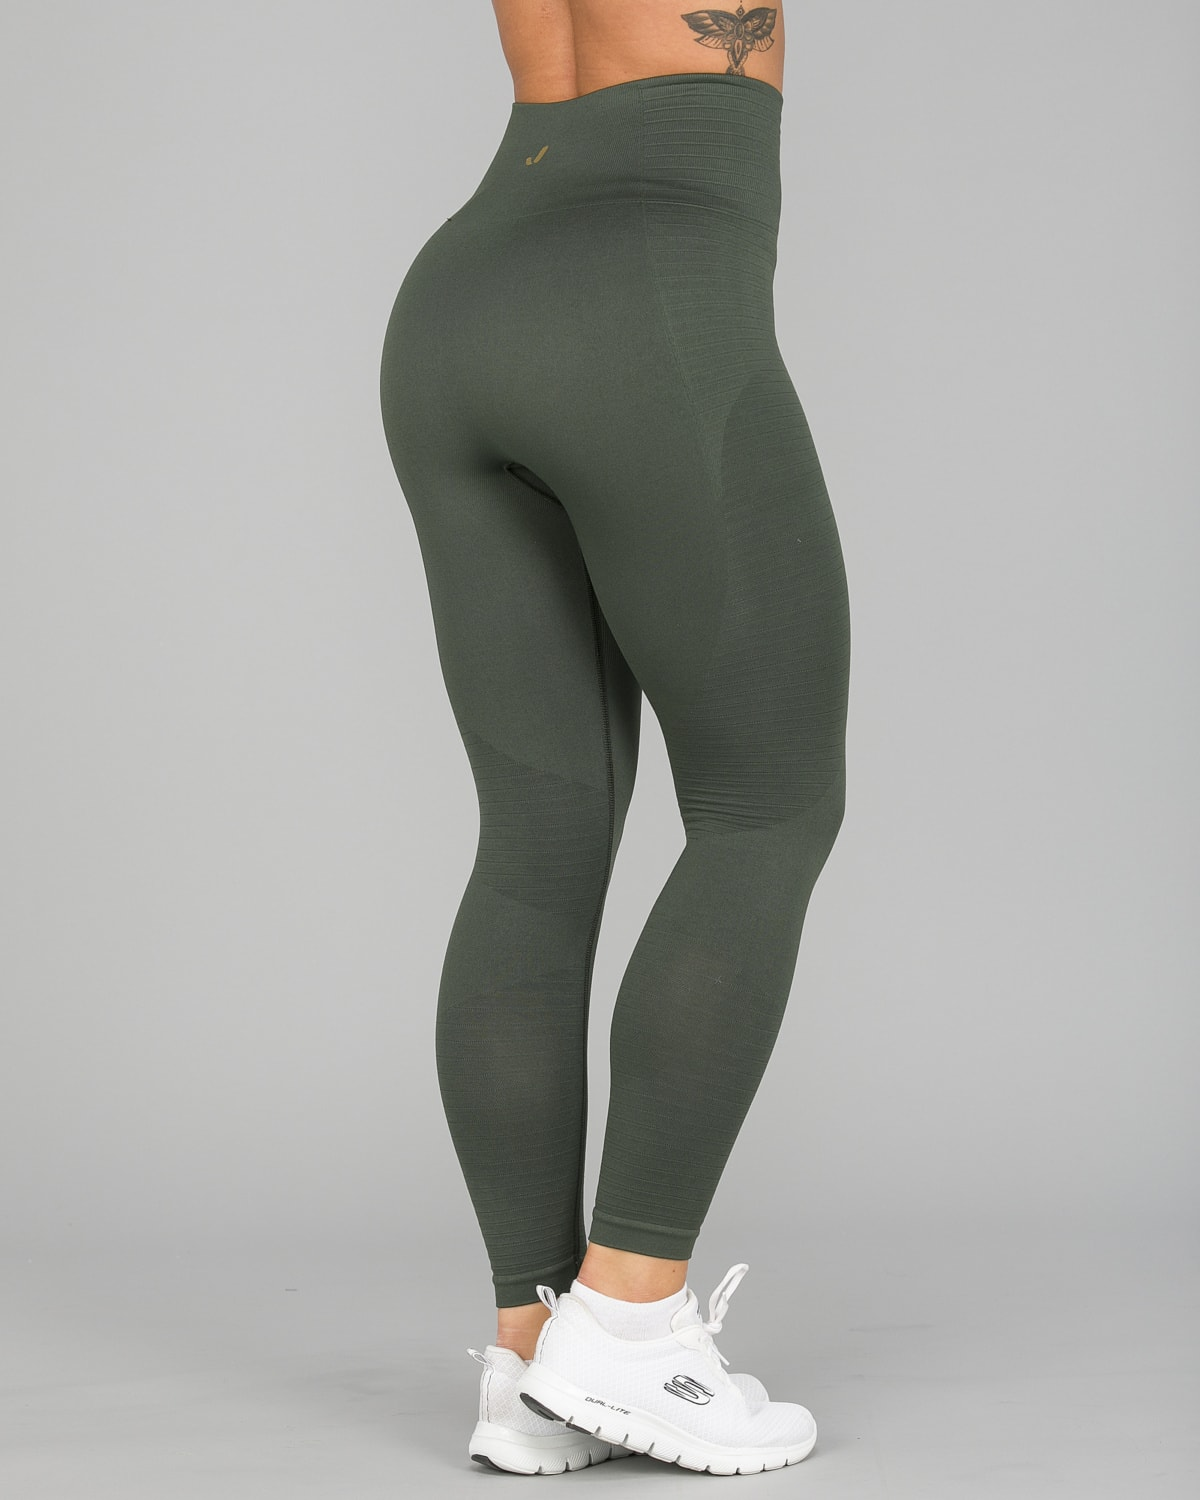 Jerf Gela 2.0 tights dark green2